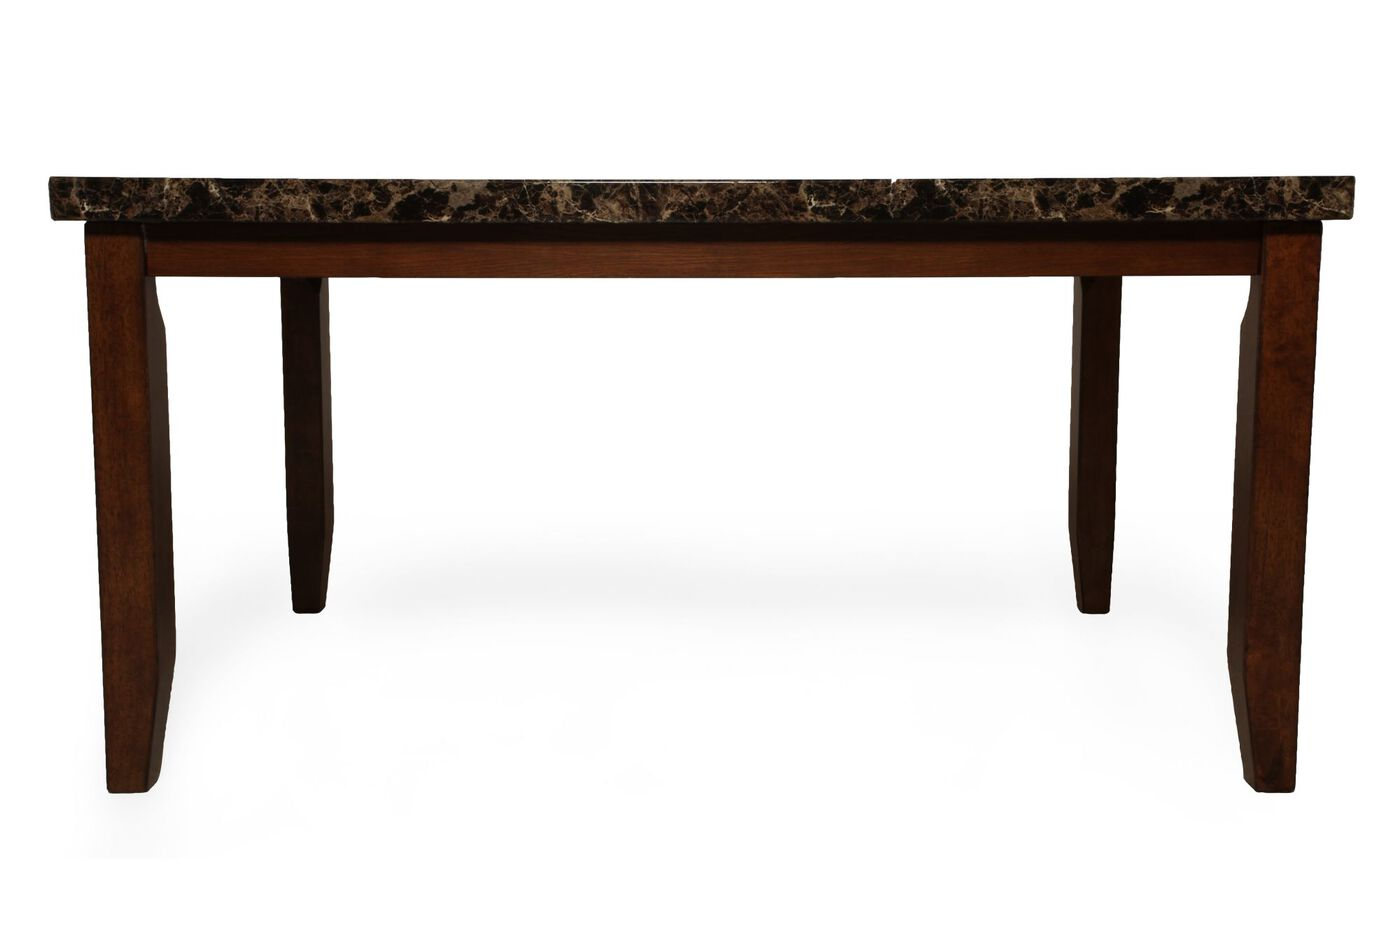 Contemporary 60quot Rectangular Dining Table in Brown  : ASH D32804725 from www.mathisbrothers.com size 1400 x 933 jpeg 49kB